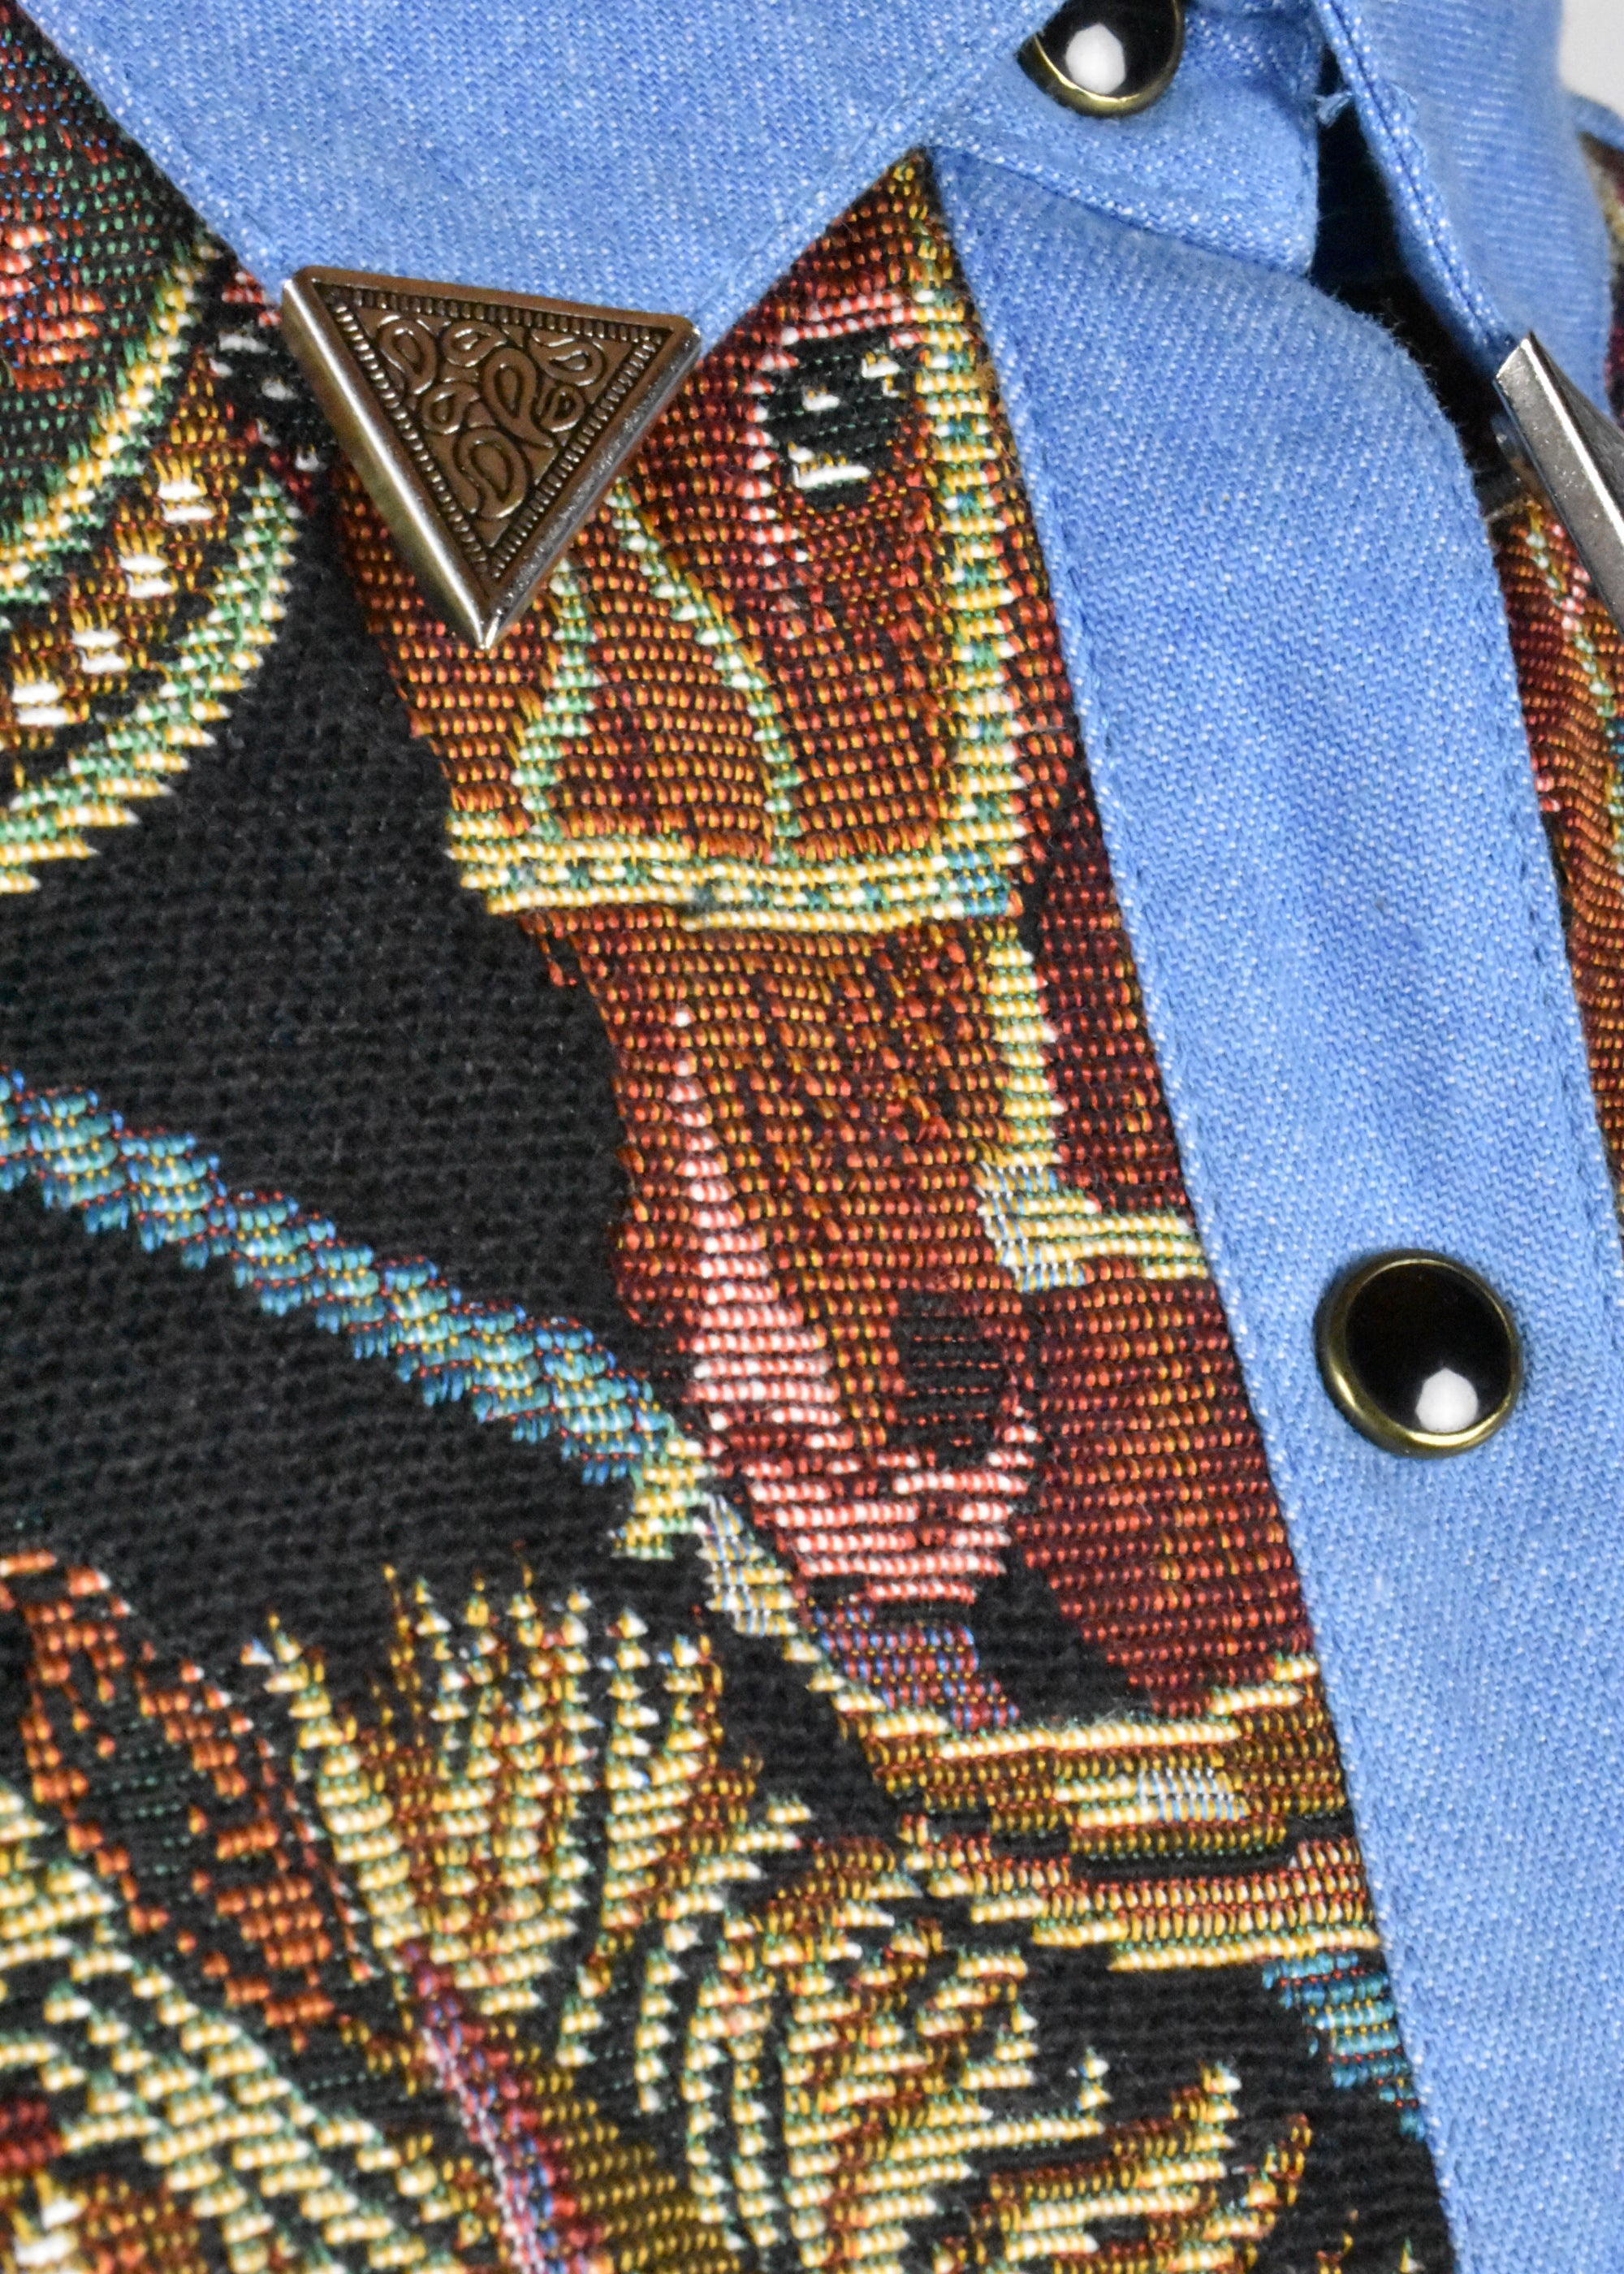 Vintage Denim Horse Tapestry Blouse with Silver Collar Tips